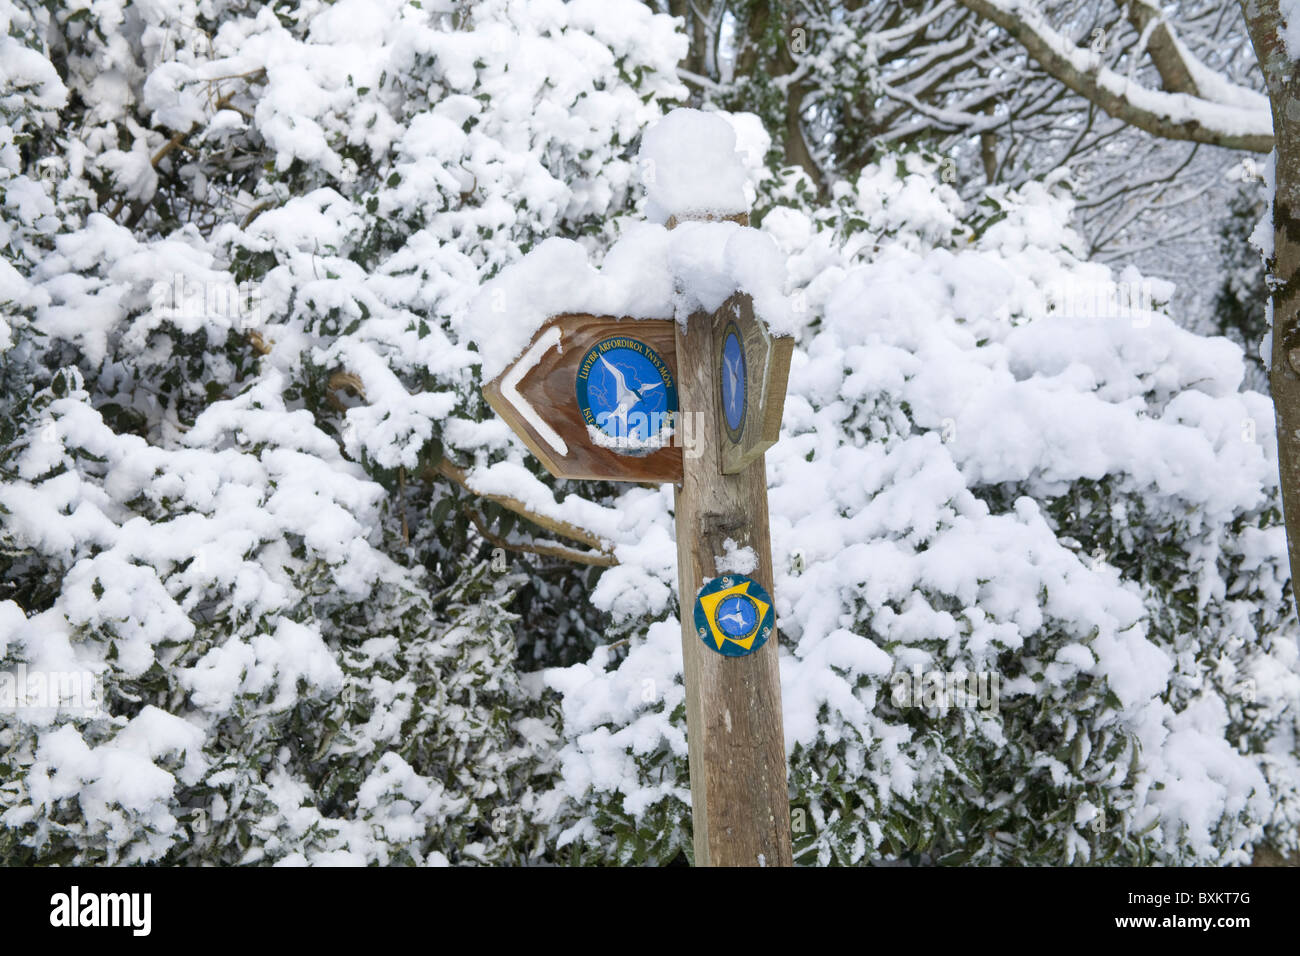 Isle of Anglesey North Wales UK December Coastal Footpath sign silhouetted against snow after unusually heavy snow - Stock Image